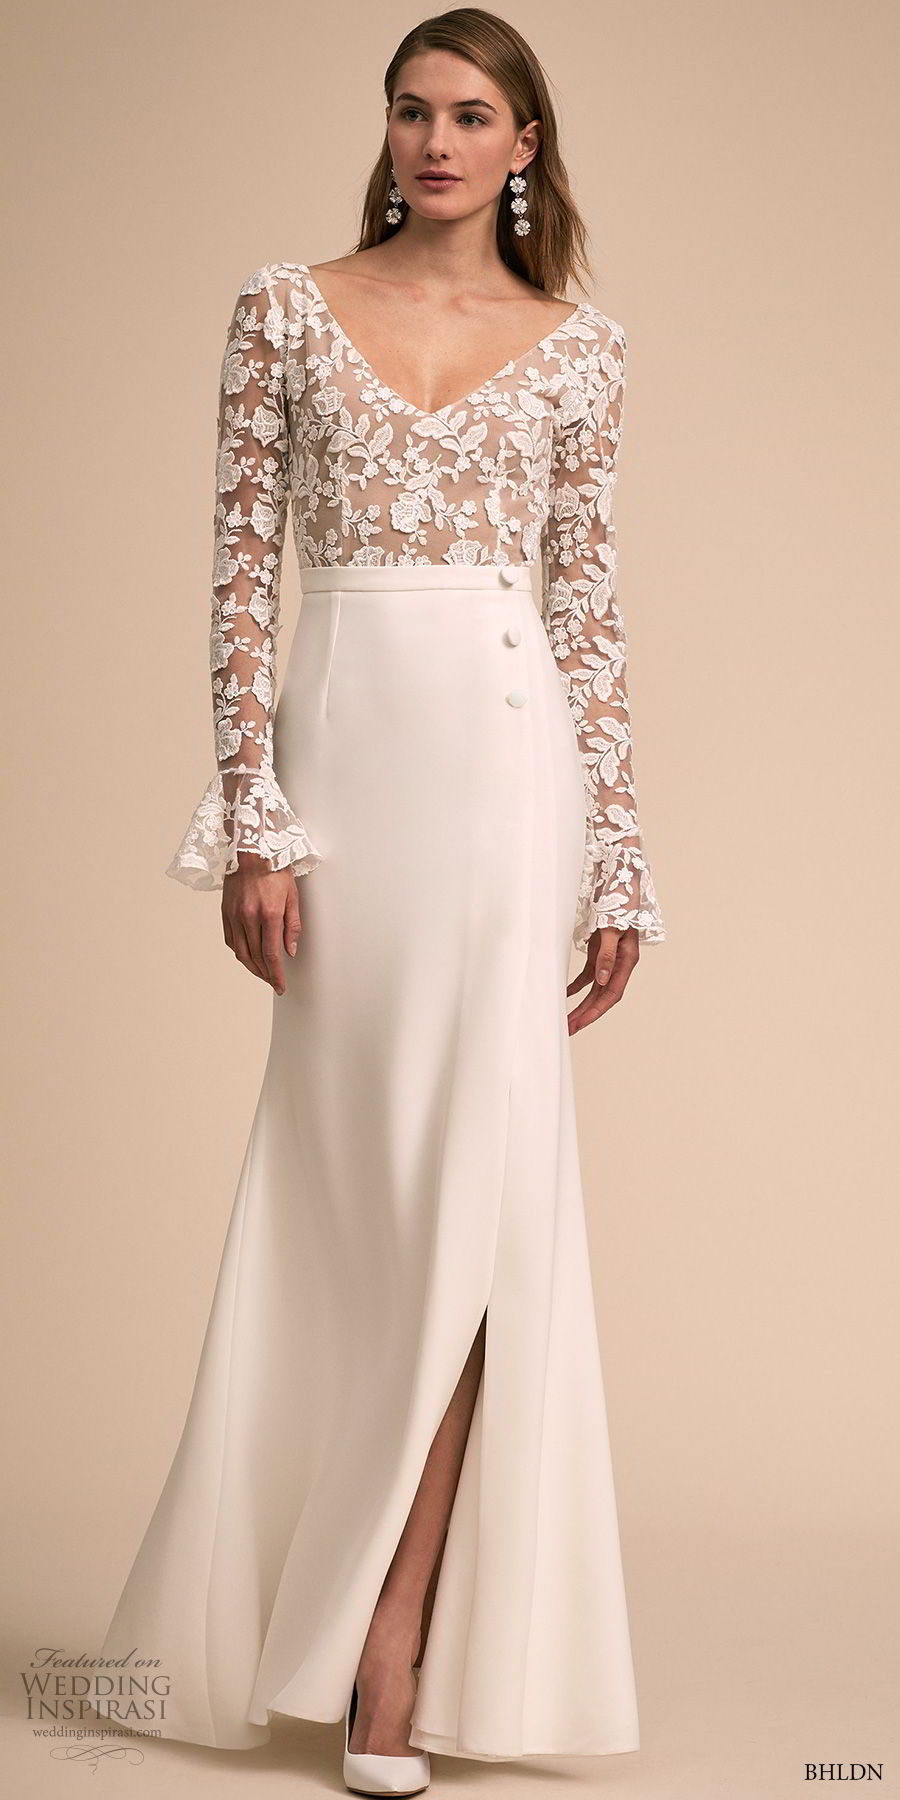 bhldn 2018 bridal long poet sleeves v neck heavily embellished bodice slit skirt elegant modified a  line wedding scoop back dress sweep train (3) mv